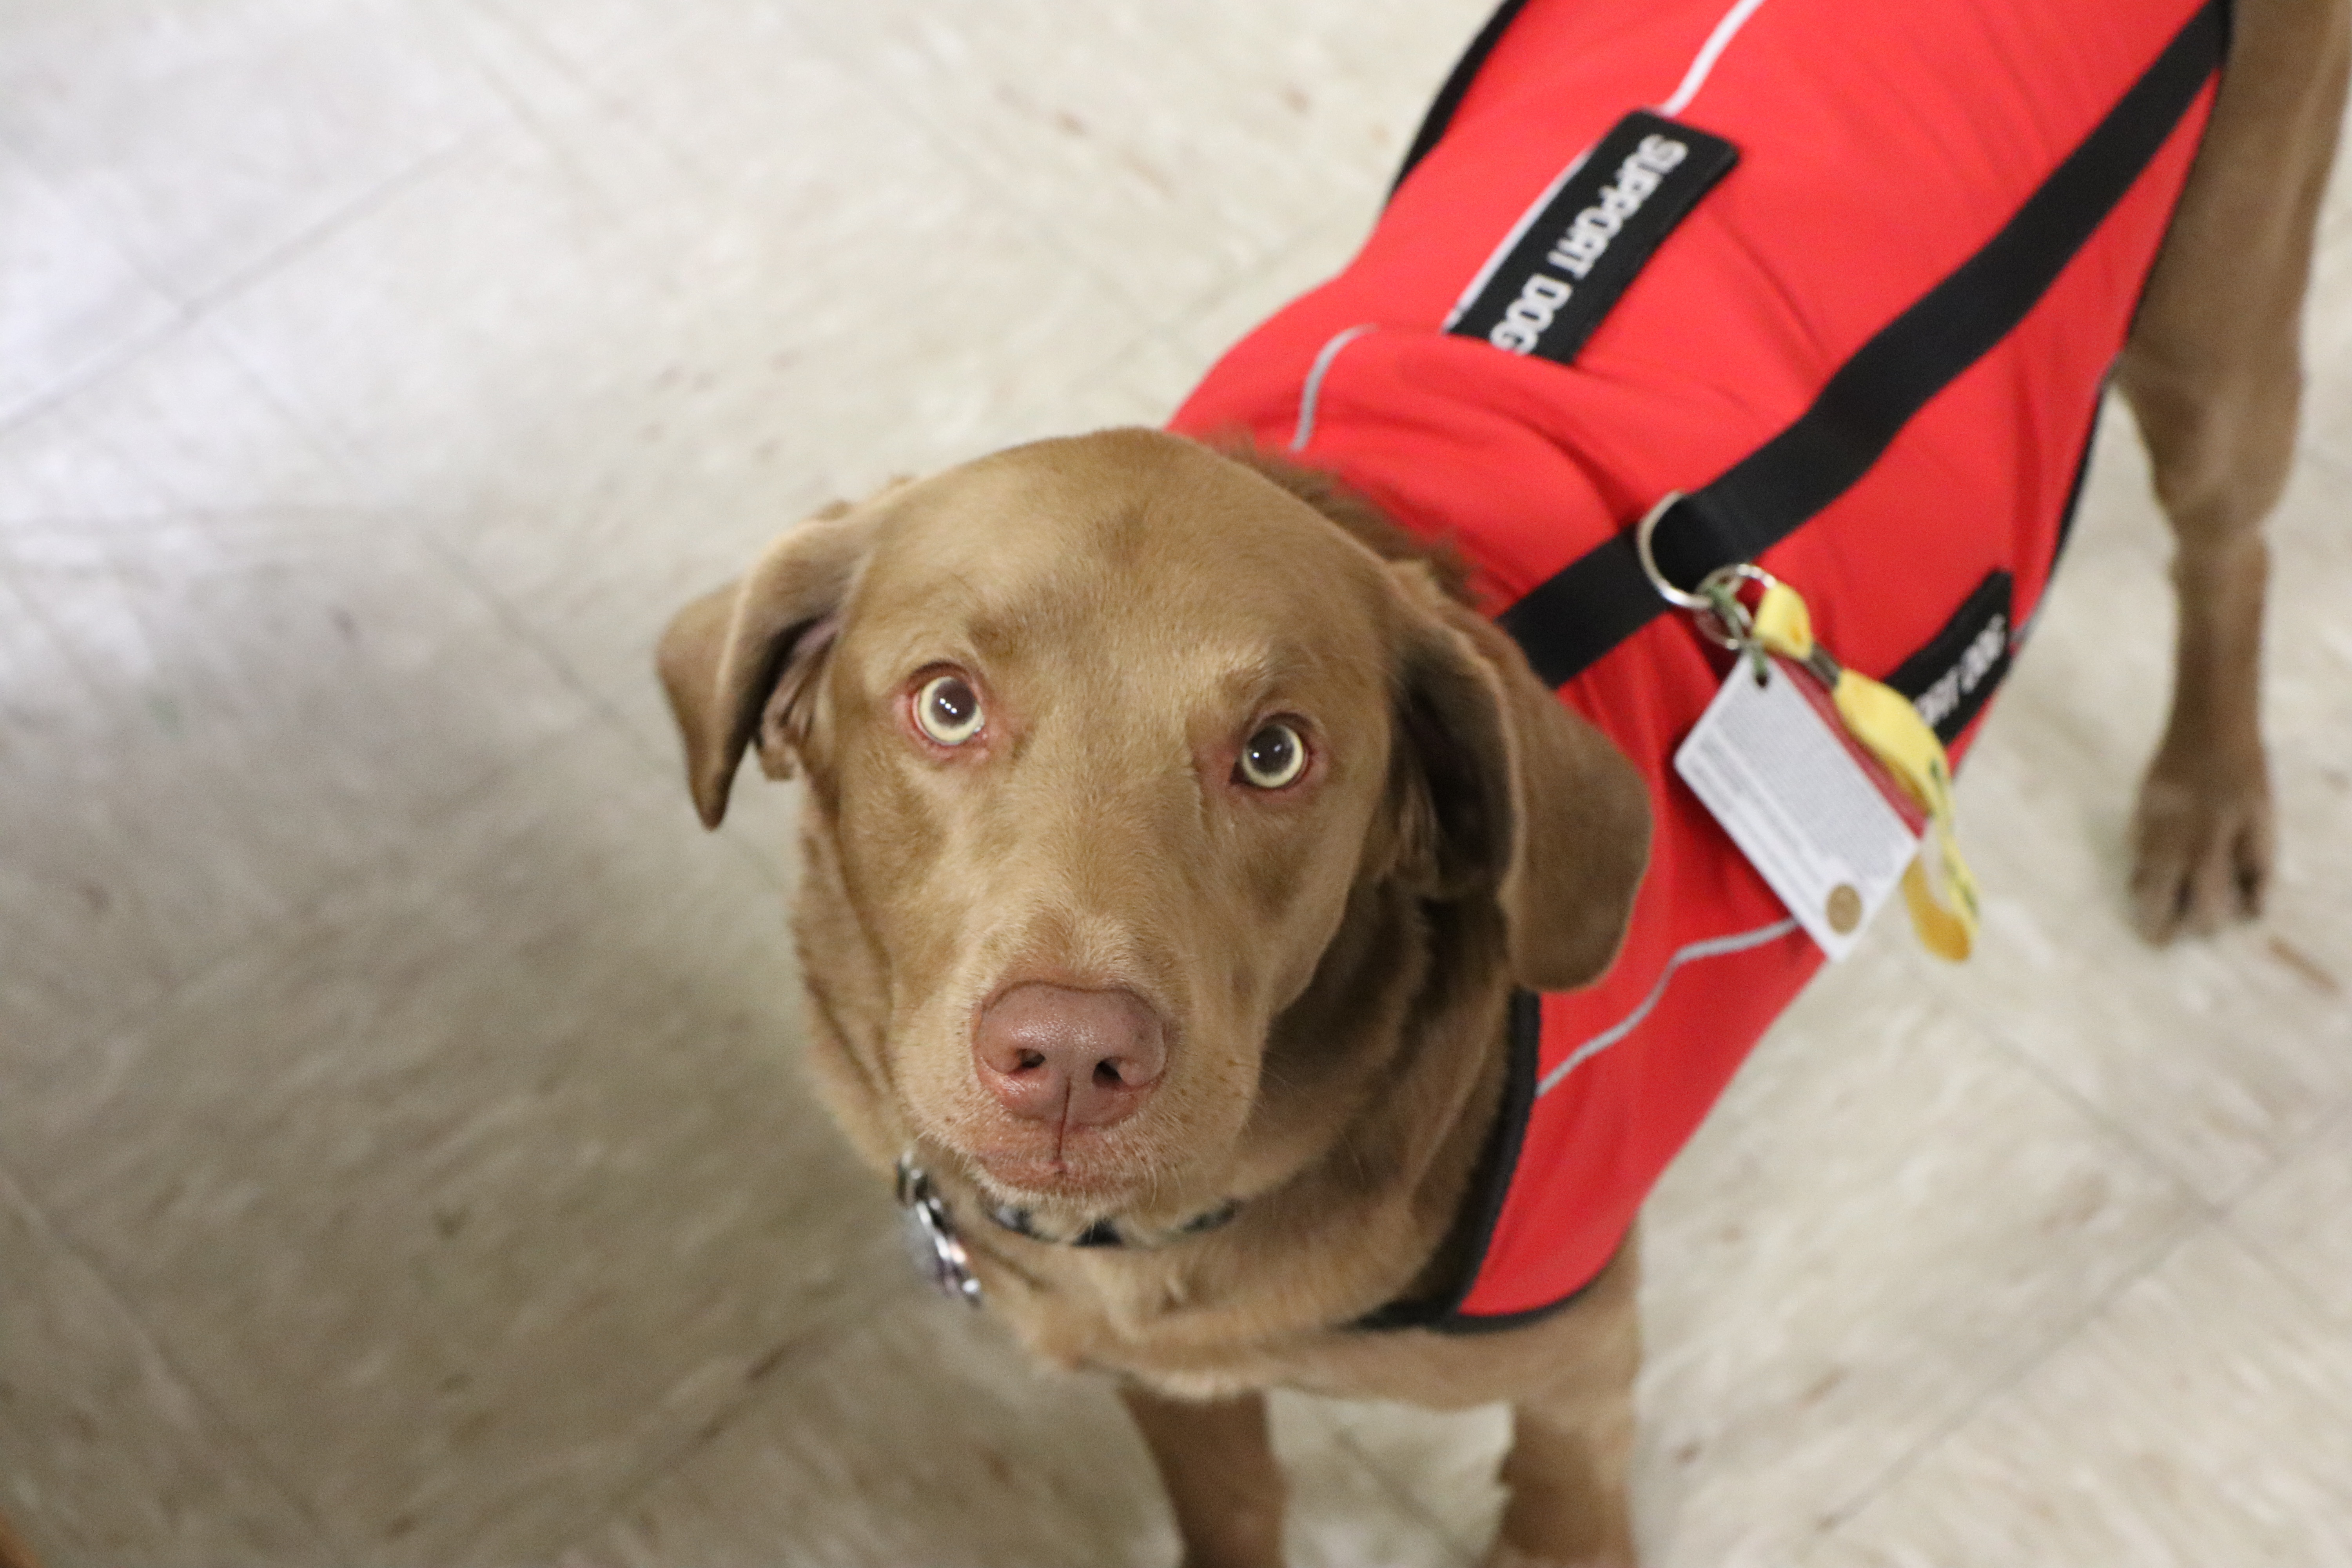 Image of Toby! He is looking up at the camera with his ears perked and his red support dog vest on! He is very cute and his fur is soft!